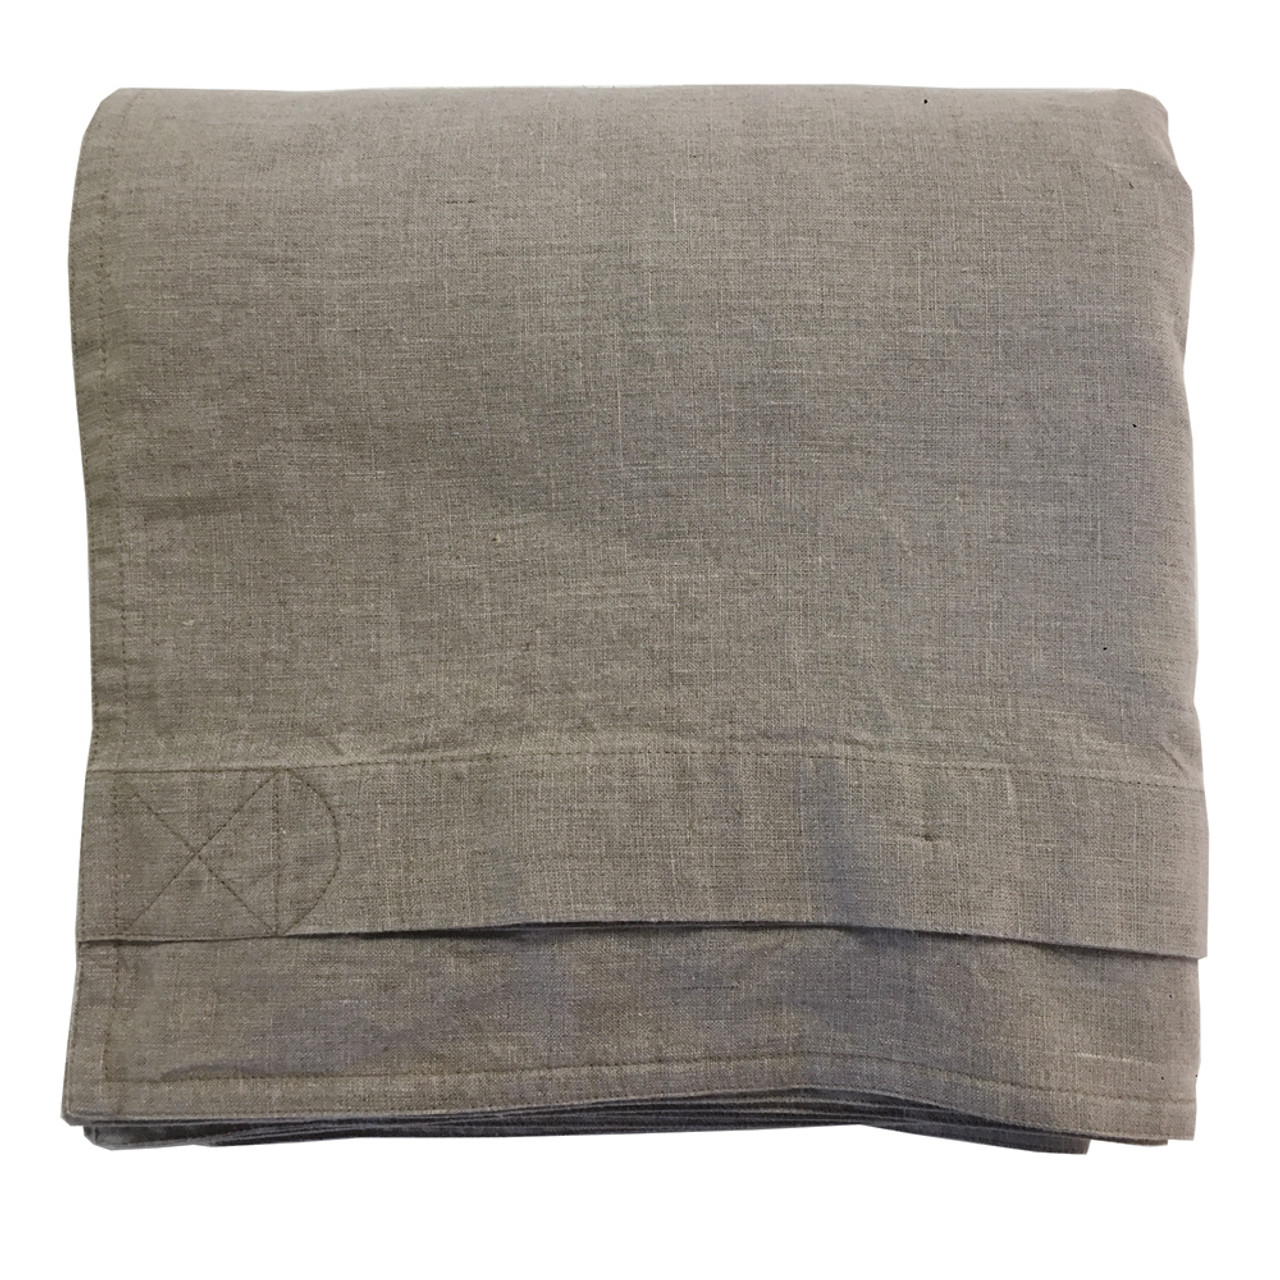 acfb5b8836a Pure Linen Duvet Cover Hand-Made in USA Buttons, Corner Ties